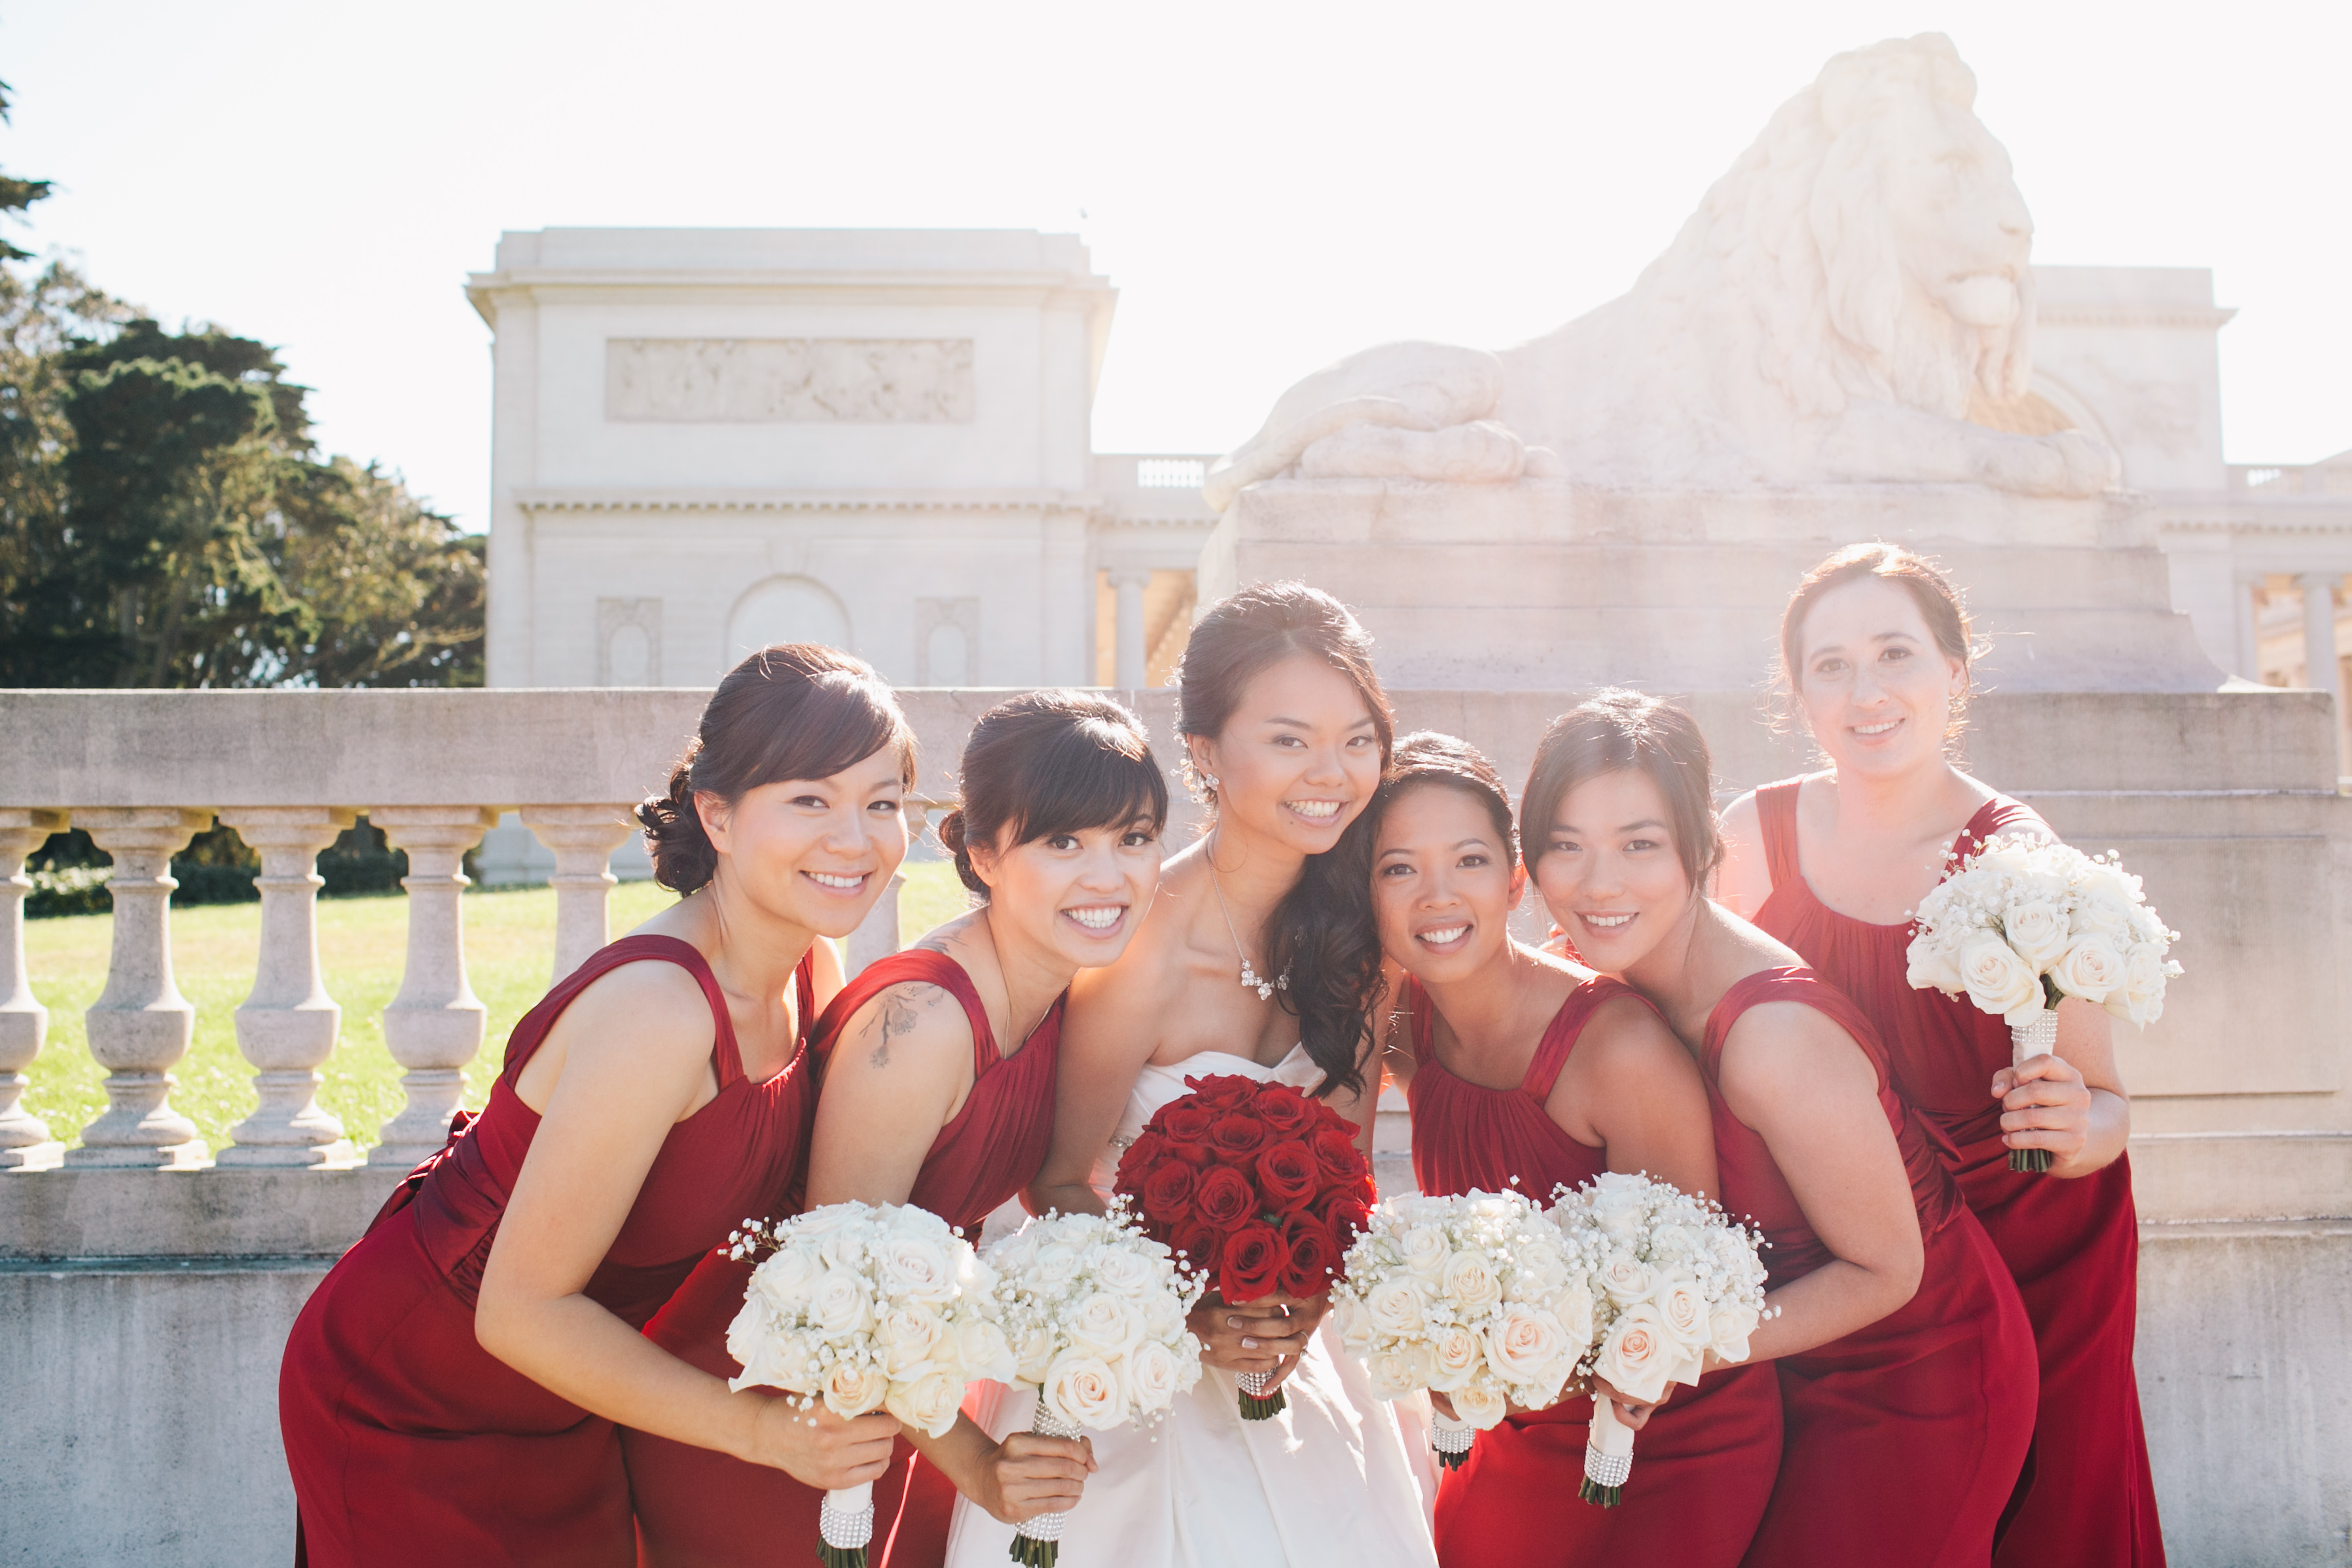 Real Weddings, Wedding Style, red, Fall Weddings, West Coast Real Weddings, Fall Real Weddings, Bridal party, Red bridesmaid dresses, Crimson, West Coast Weddings, Romantic Real Weddings, Glamorous Real Weddings, Glamorous Weddings, Romantic Real Wedding